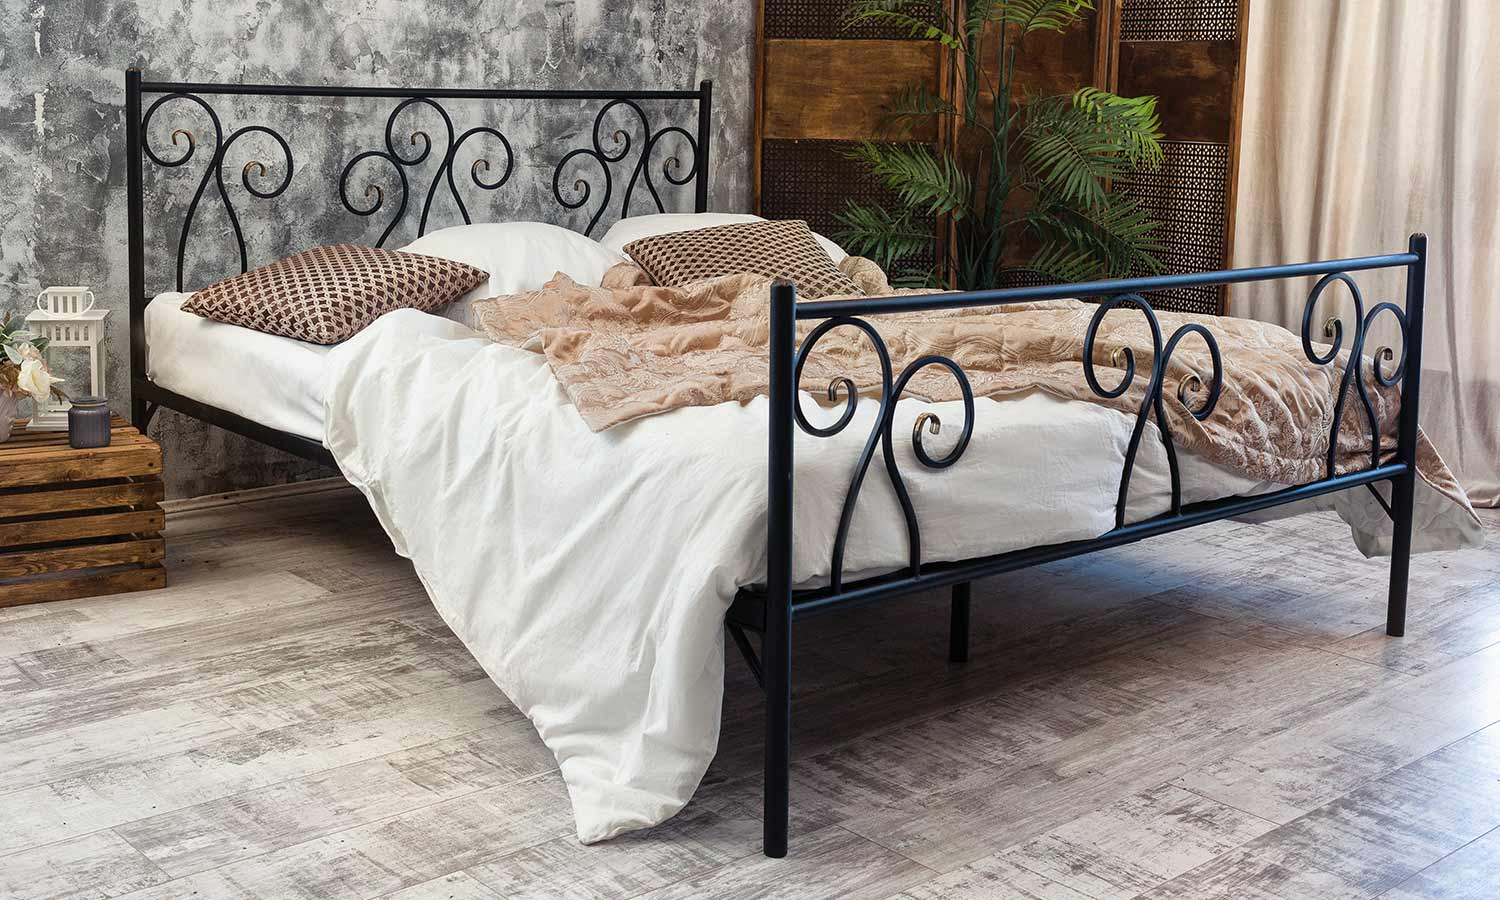 A simplistic iron bedframe with delicate swirls of metal wover int he headboard and footer.